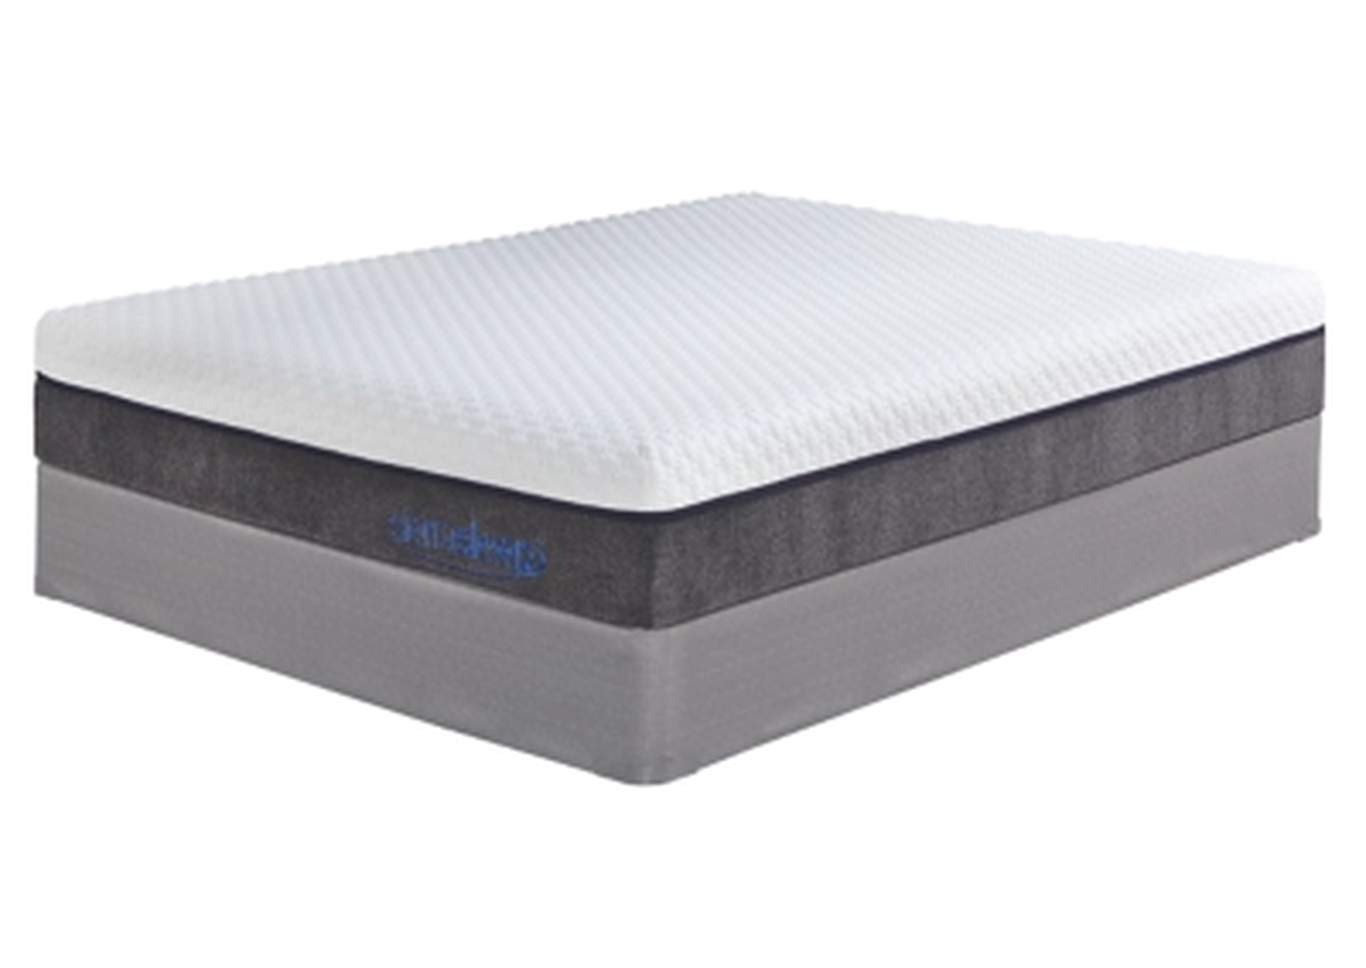 Mygel Hybrid 1100 Full Mattress,Sierra Sleep by Ashley